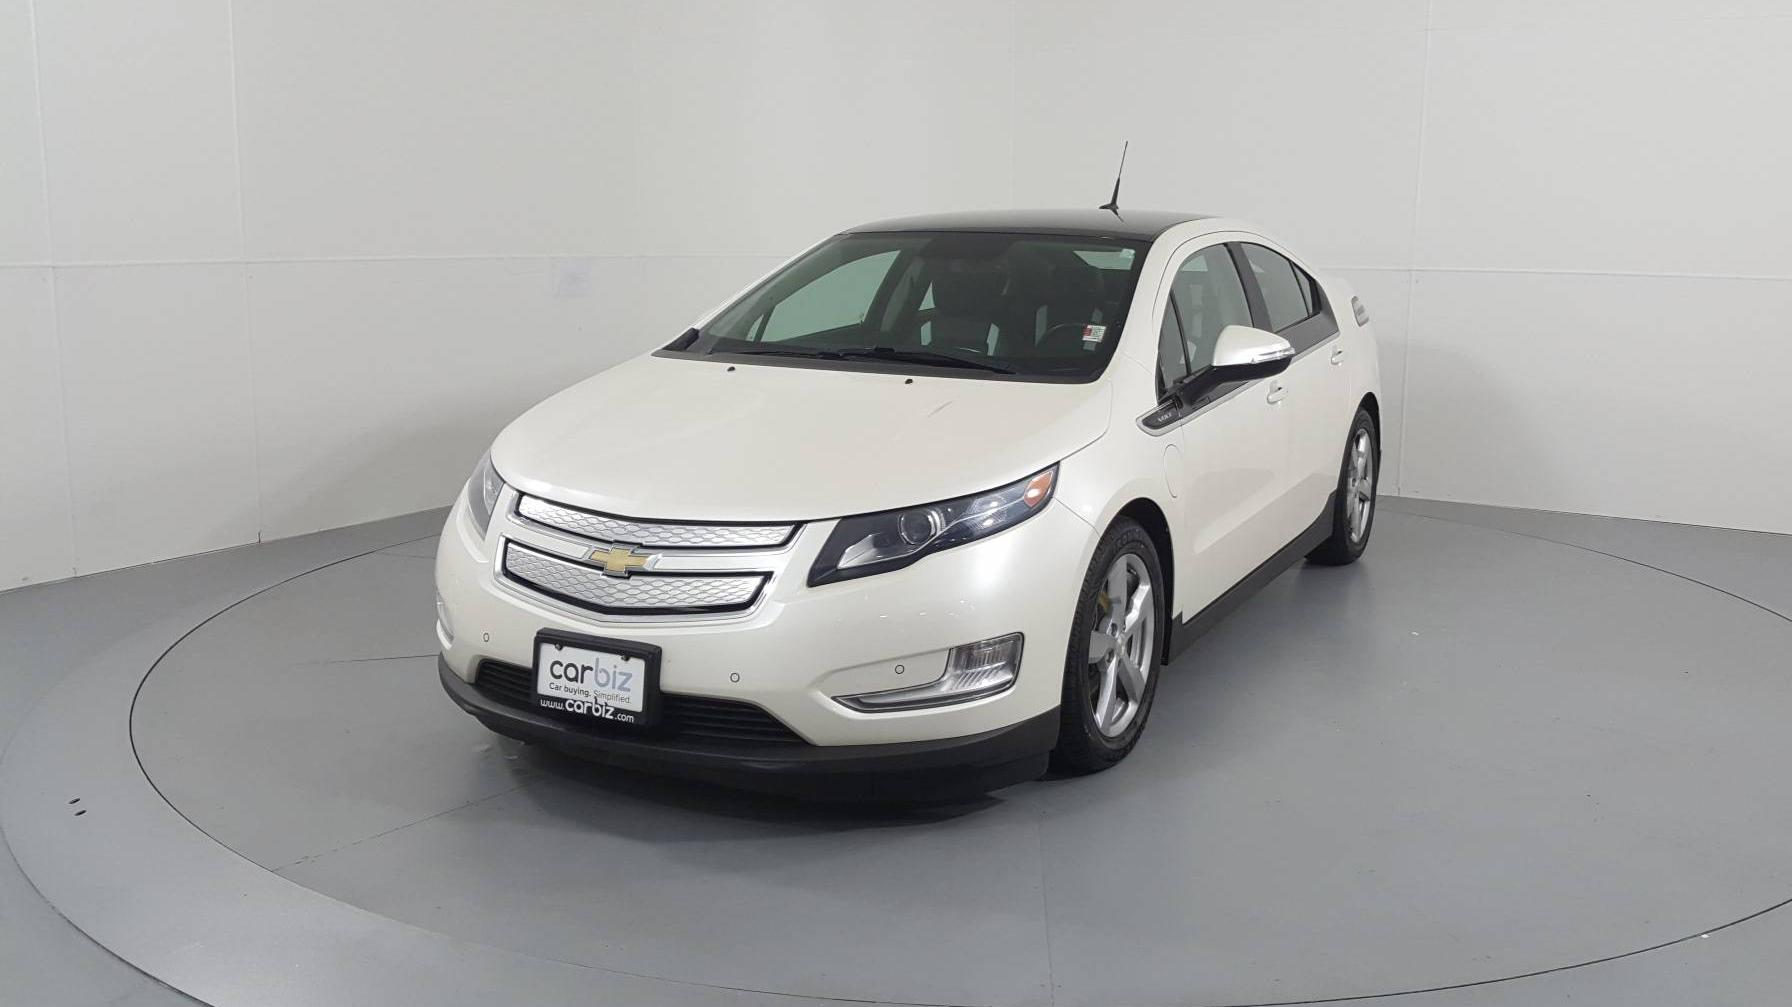 Certified Pre-Owned 2012 Chevrolet Volt